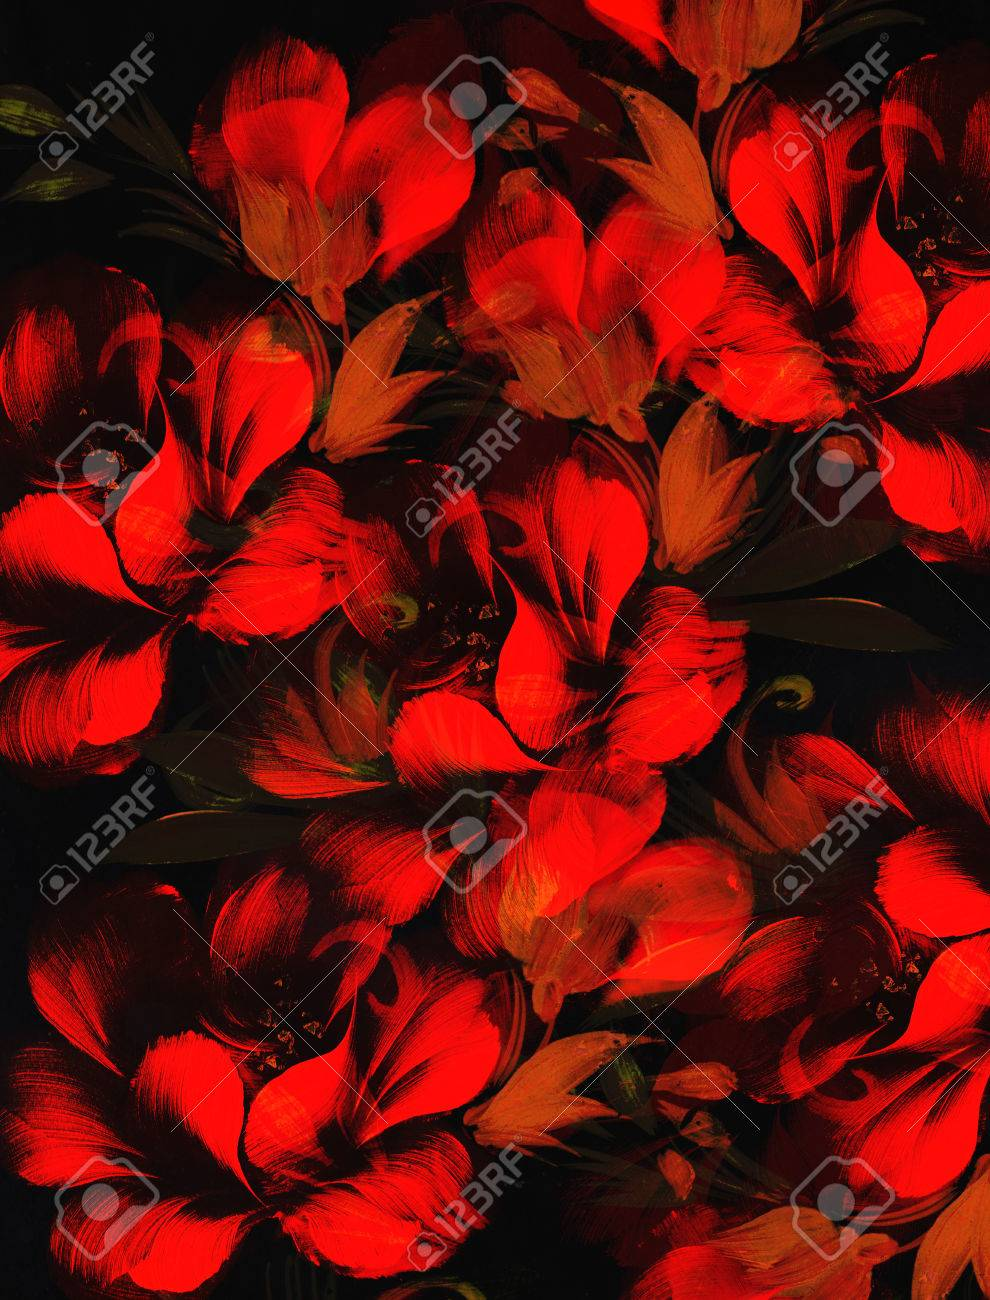 Red Flower On Black Background Painting And Computer Collage Stock Photo Picture And Royalty Free Image Image 57108445